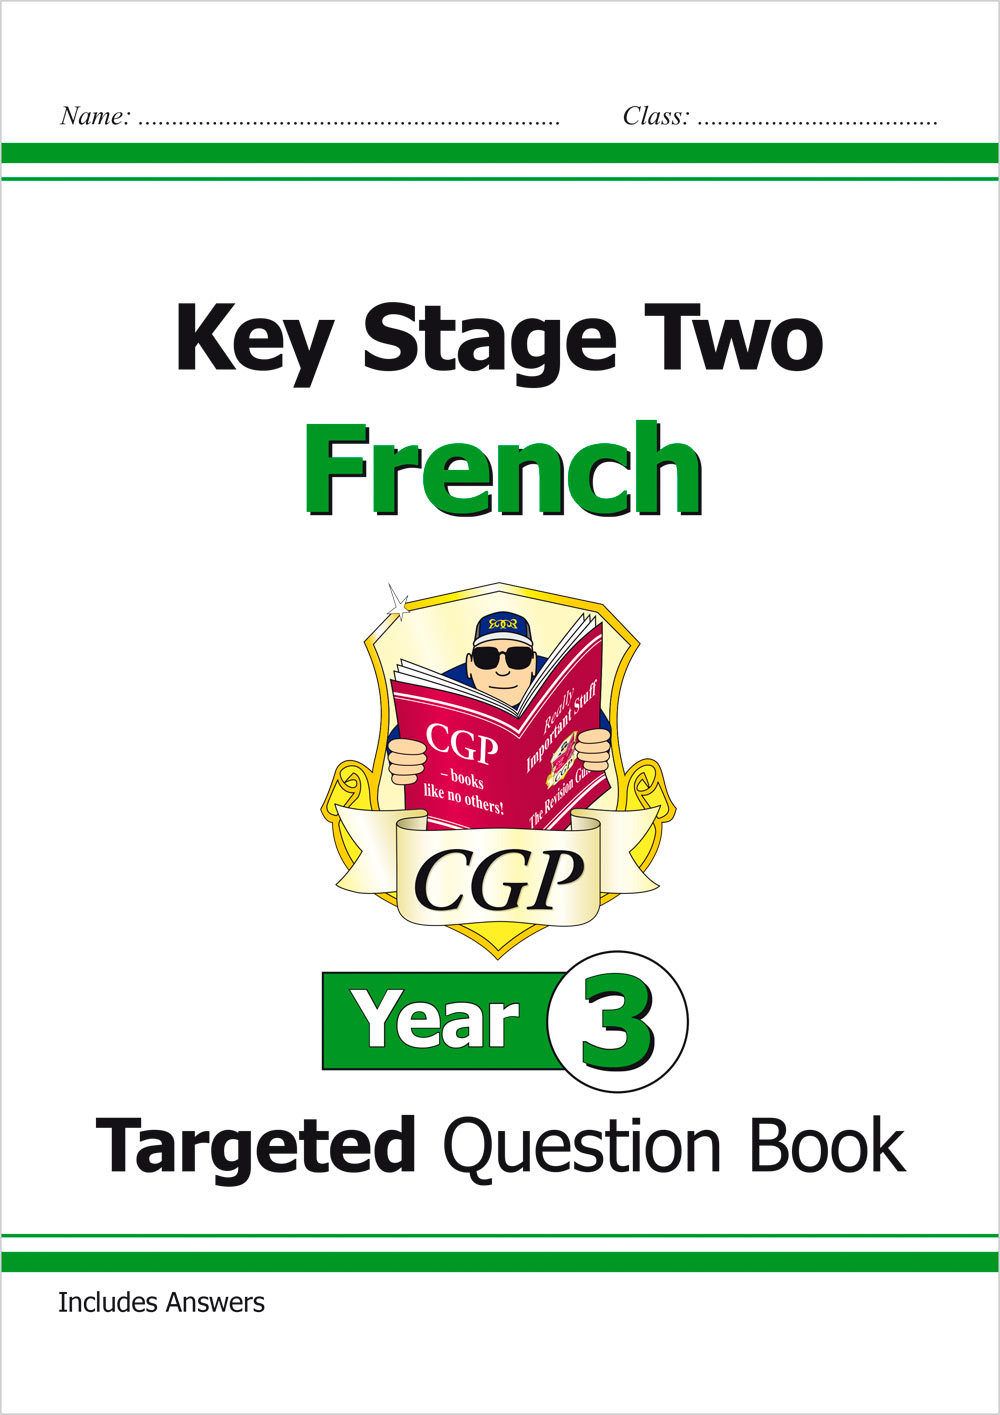 F3Q21 - New KS2 French Targeted Question Book - Year 3